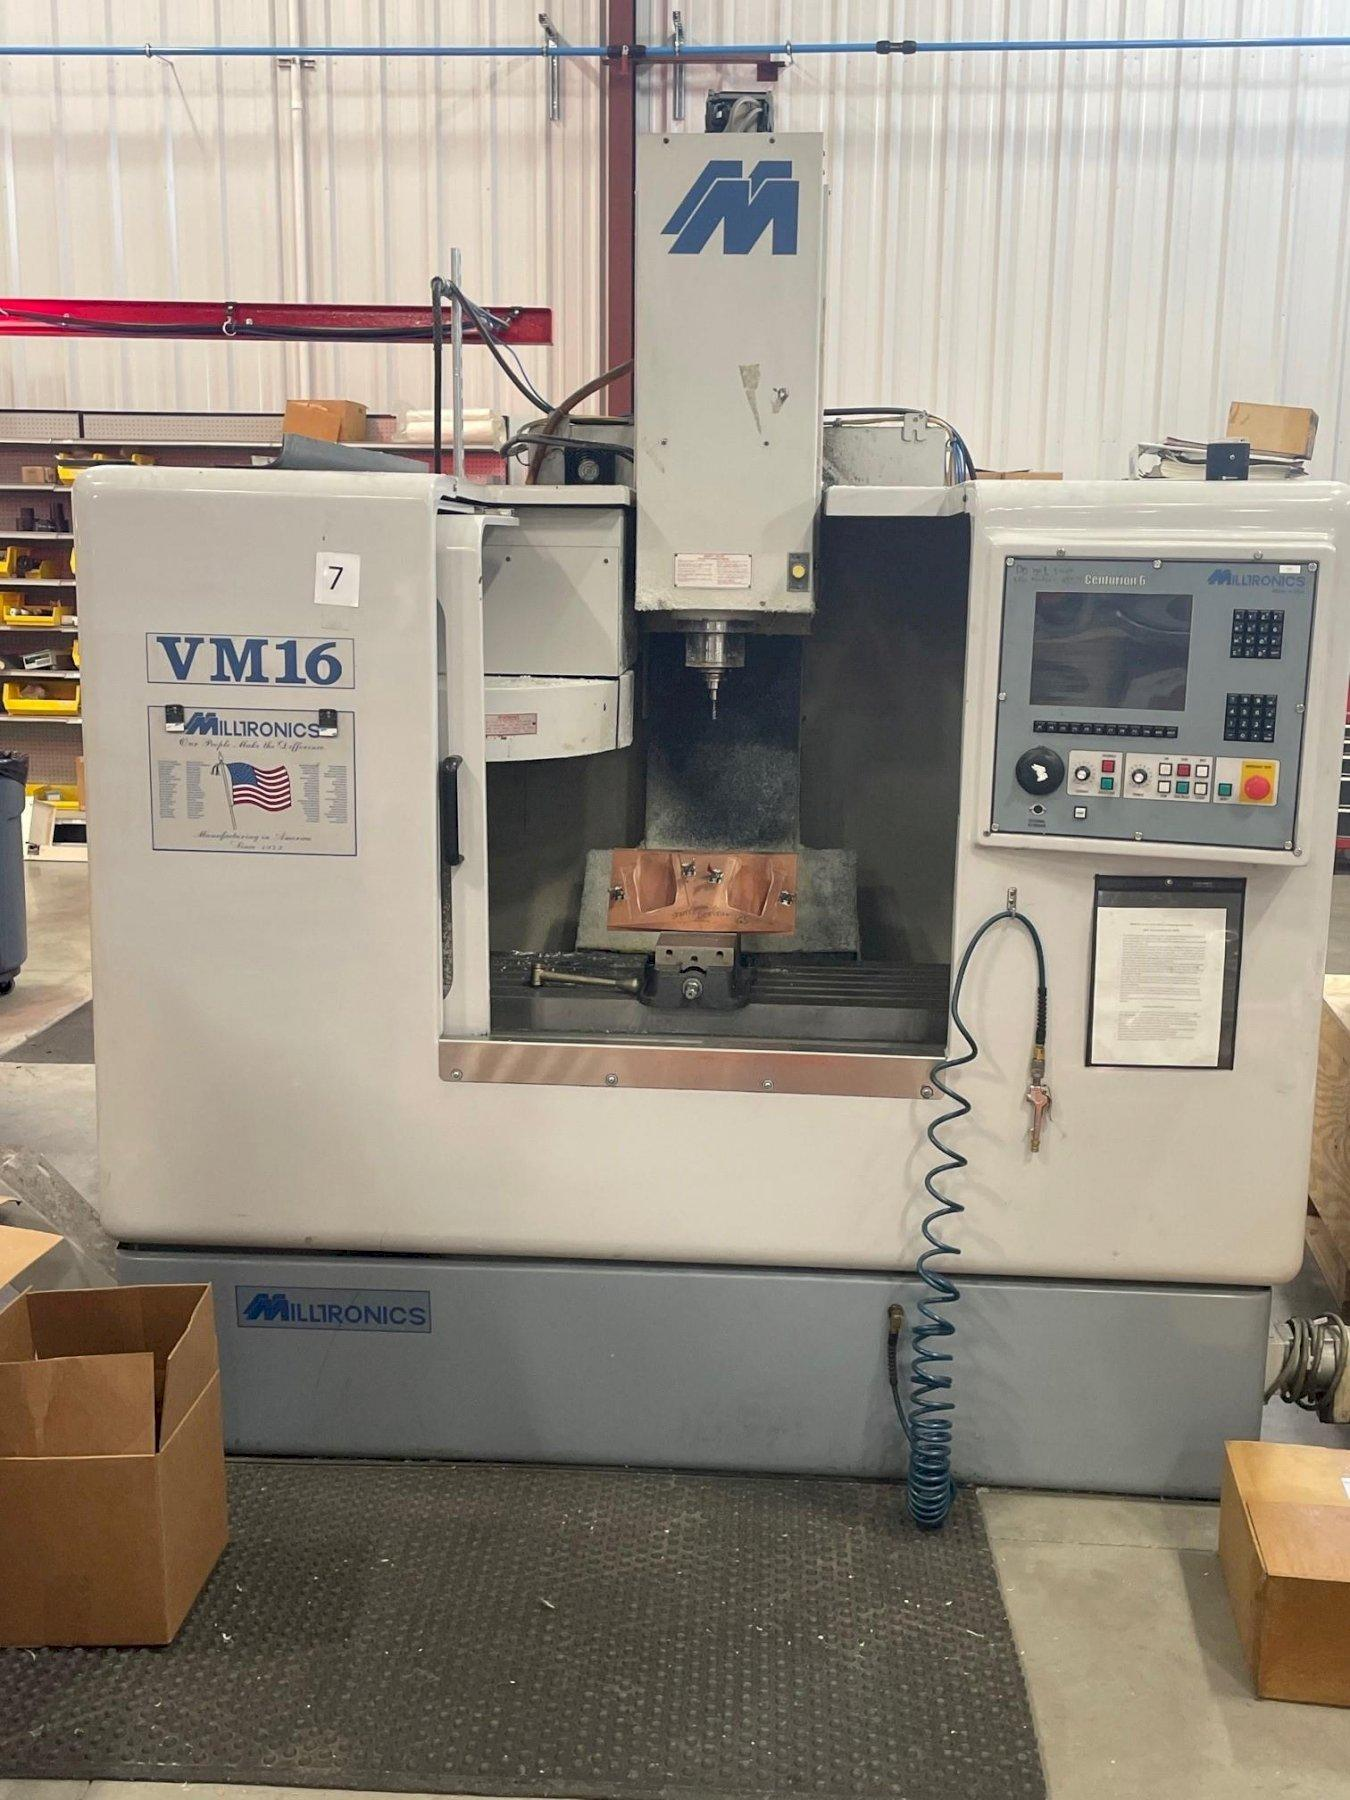 MILLTRONICS VM16 CNC VERTICAL MACHINING CENTER